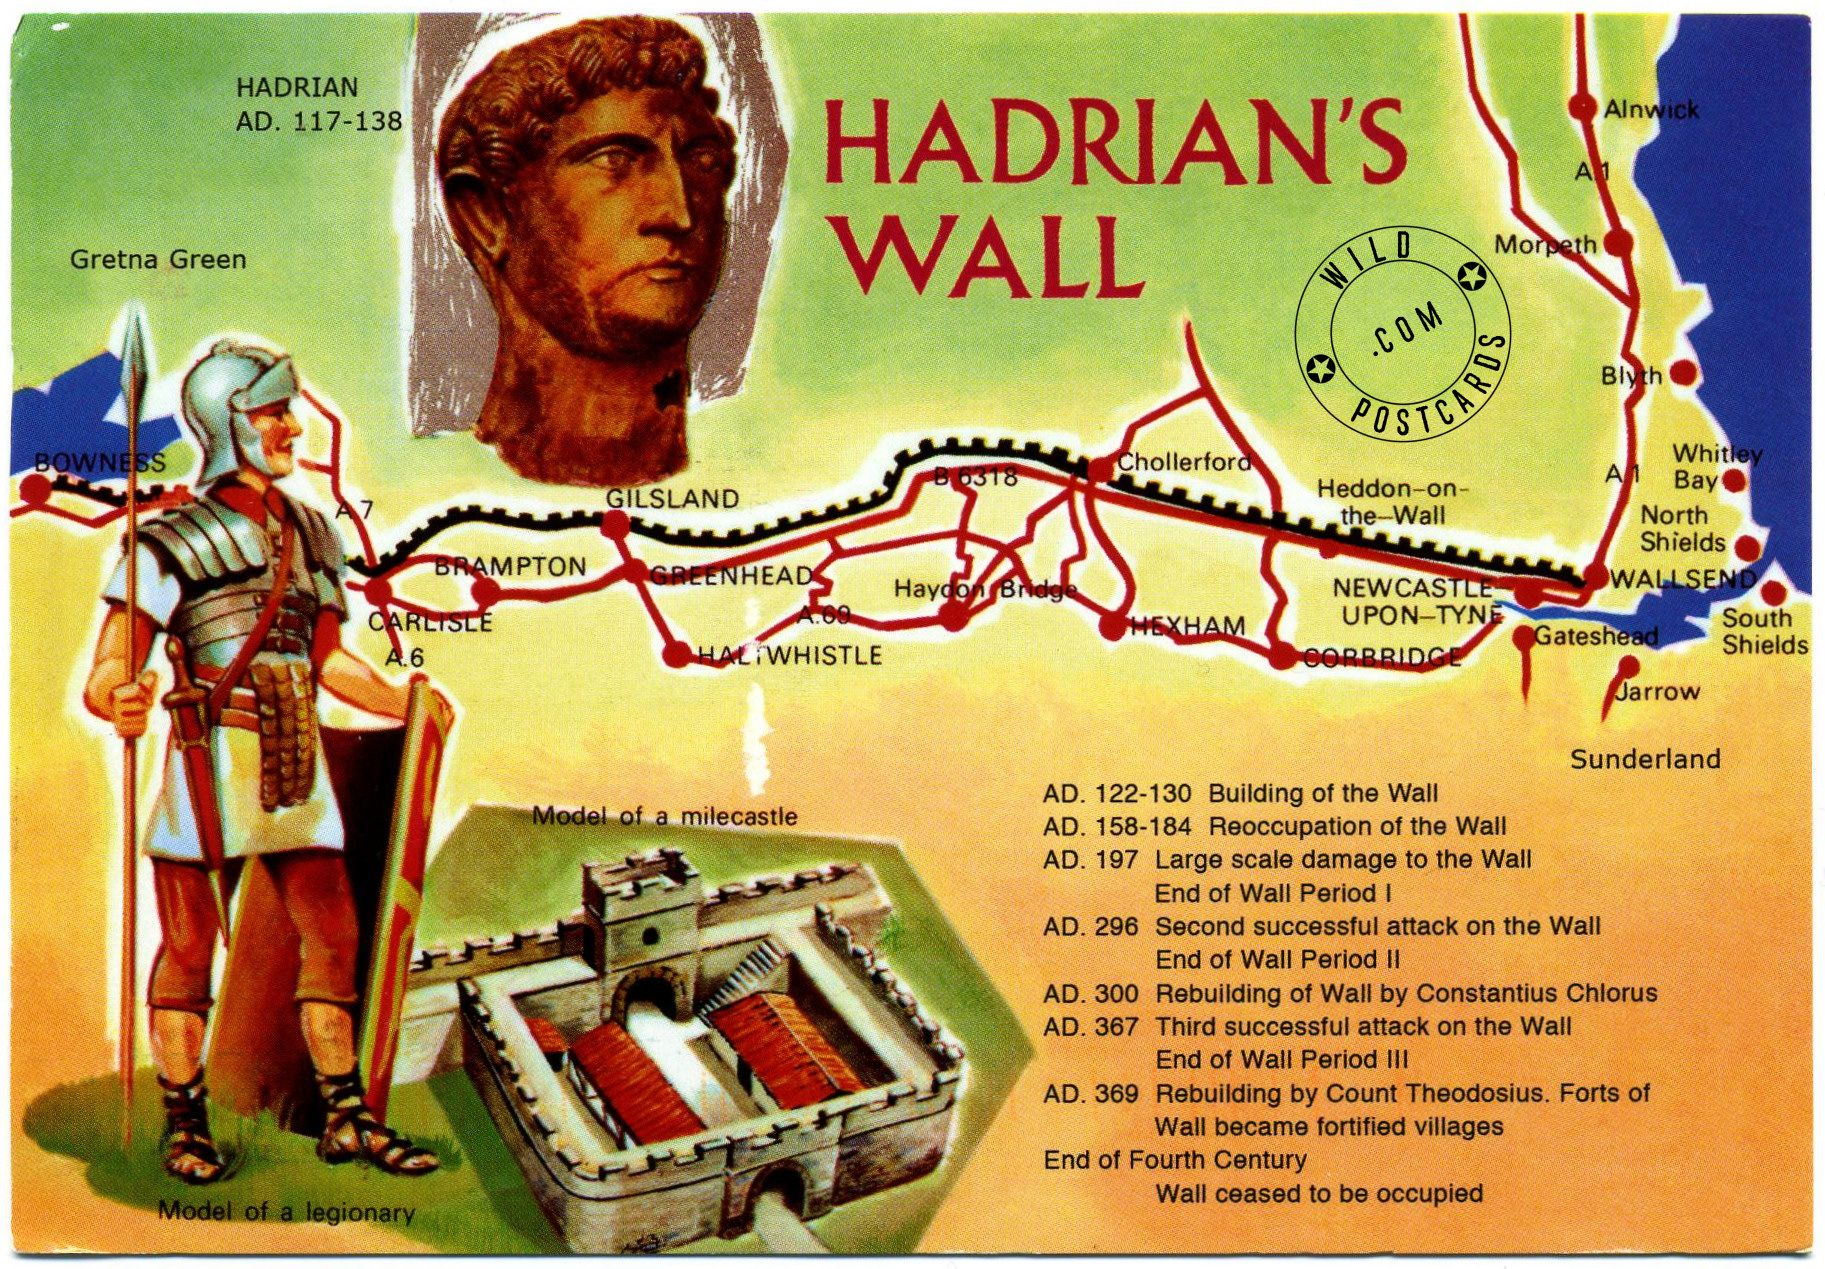 an analysis of the rule of emperor hadrian of rome By juxtaposing analysis of hadrian's projects in rome and greece with his projects and actions in judaea, this study seeks to provide a deeper understanding of his religious policy and the state of roman religion in his times.